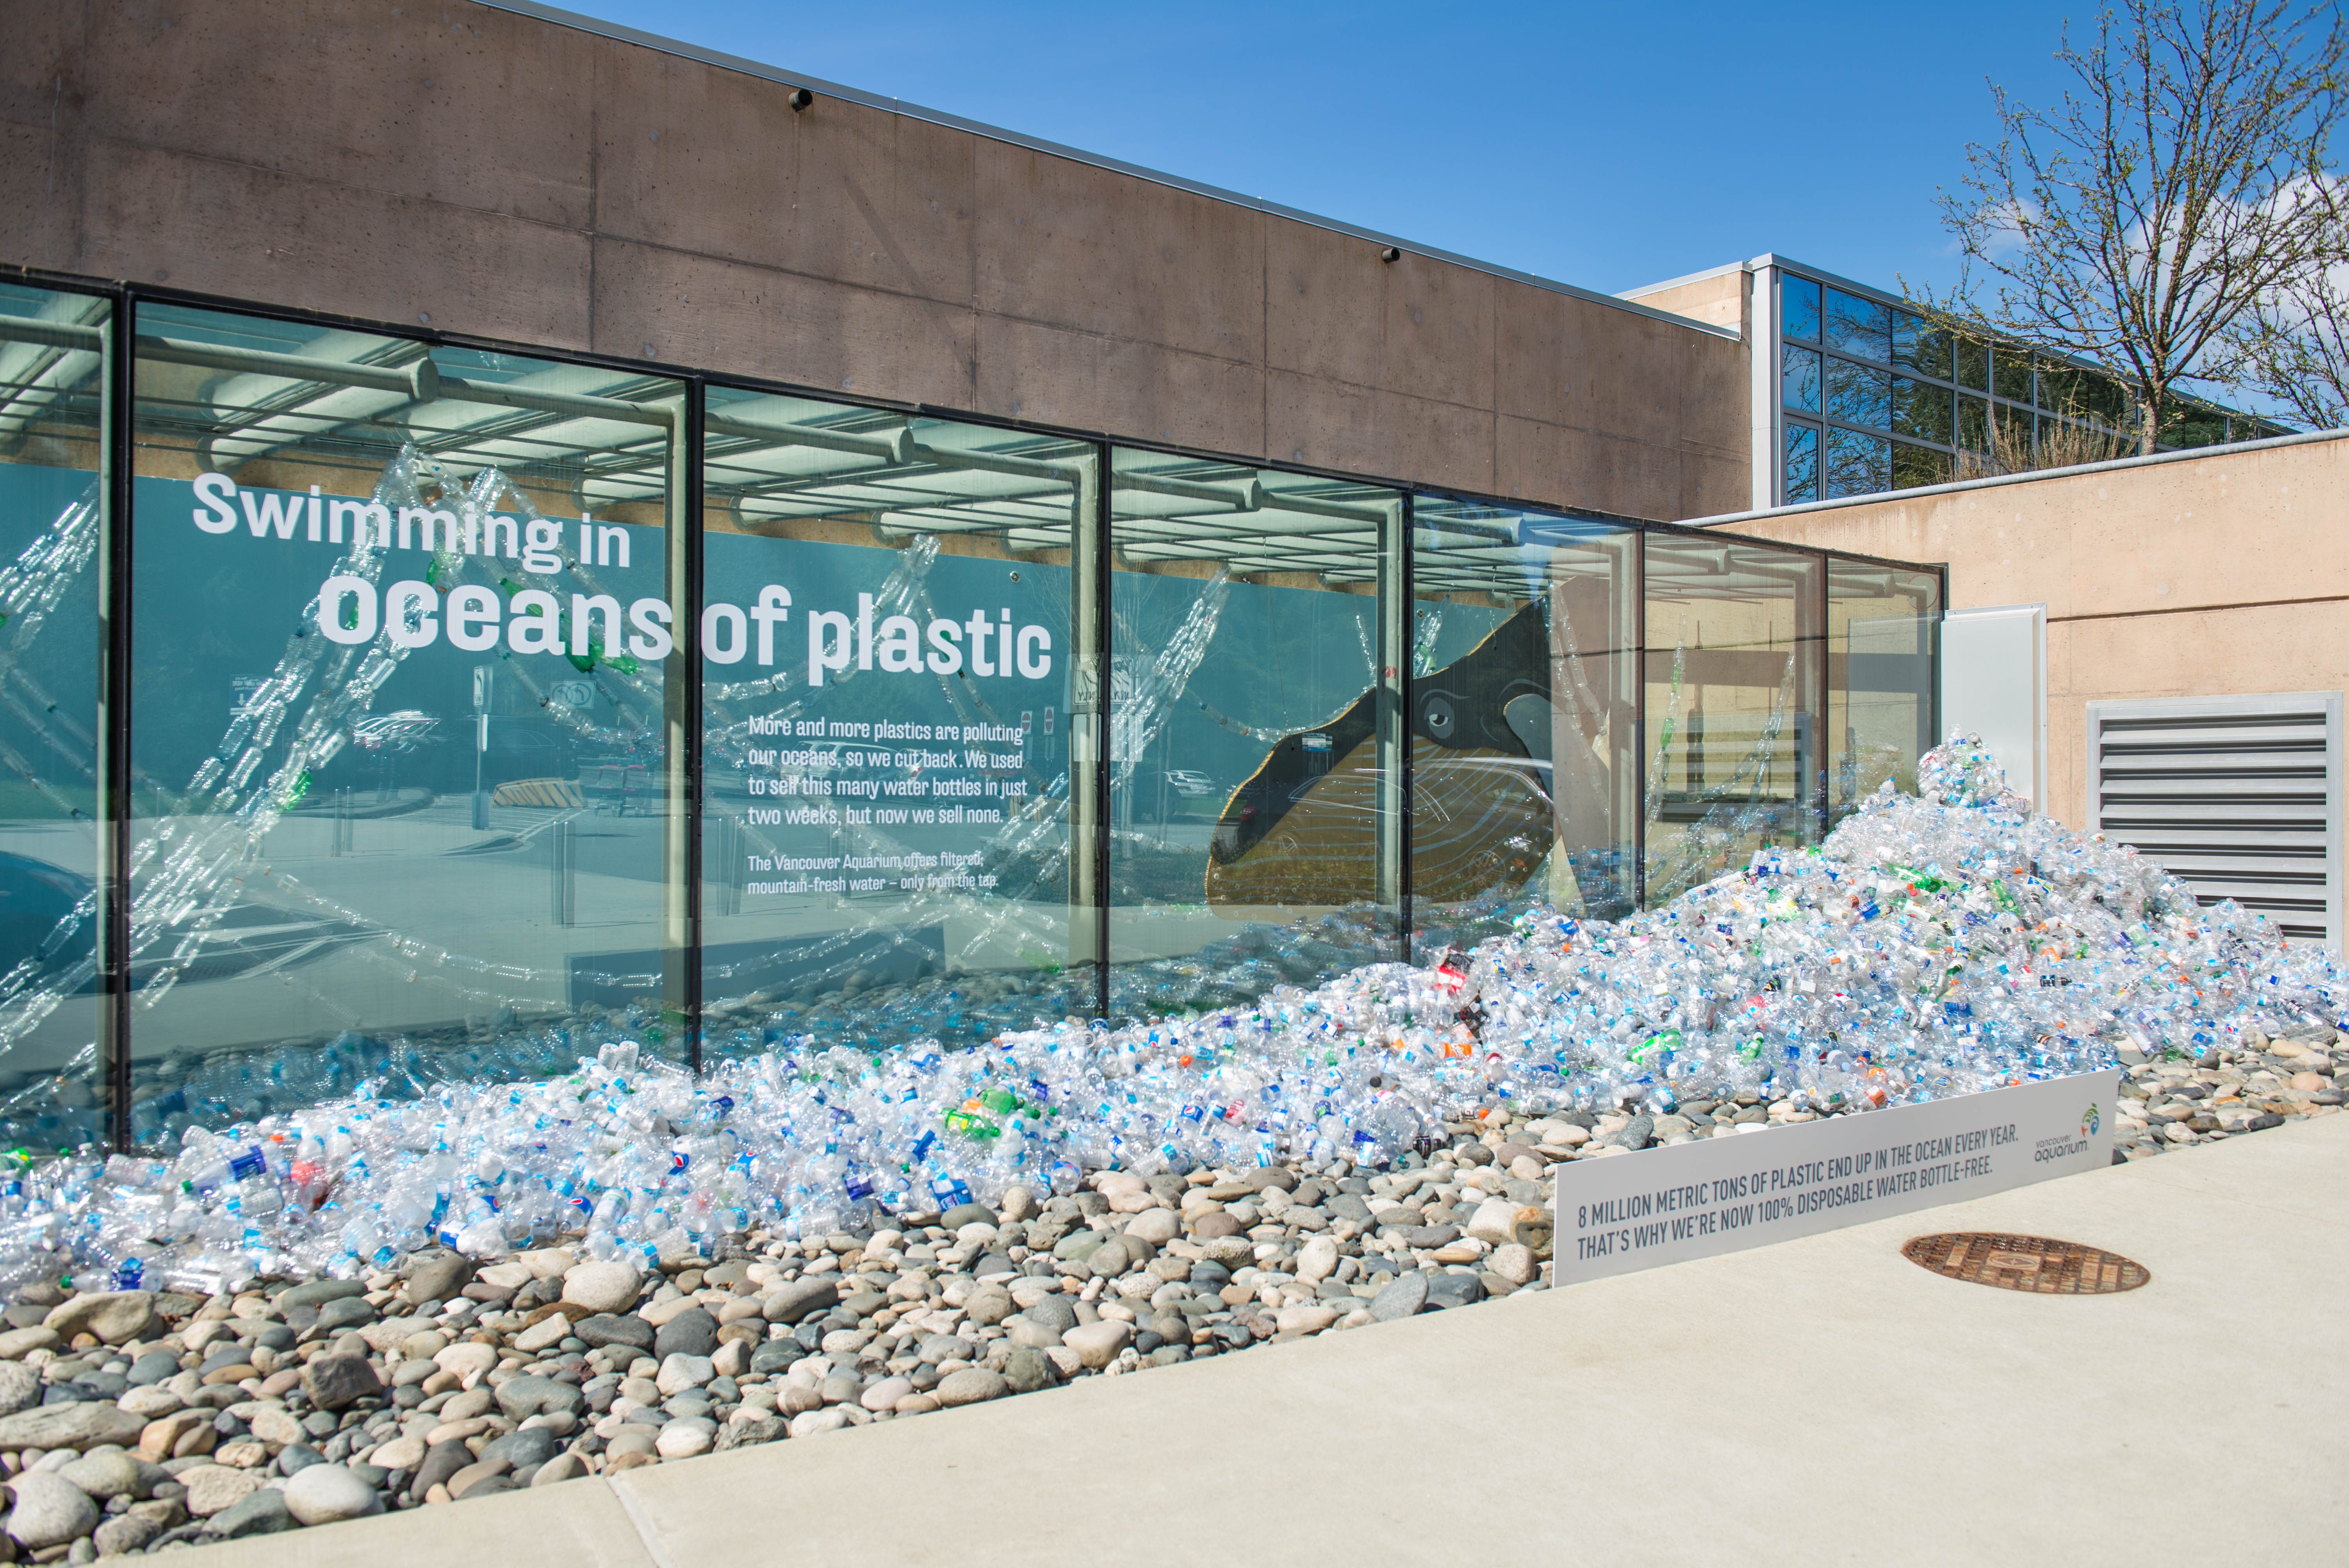 VANCOUVER AQUARIUM MARINE SCIENCE CENTRE FIRST ZOO OR AQUARIUM IN CANADA TO DISCONTINUE SALES OF SINGLE-USE PLASTIC WATER BOTTLES